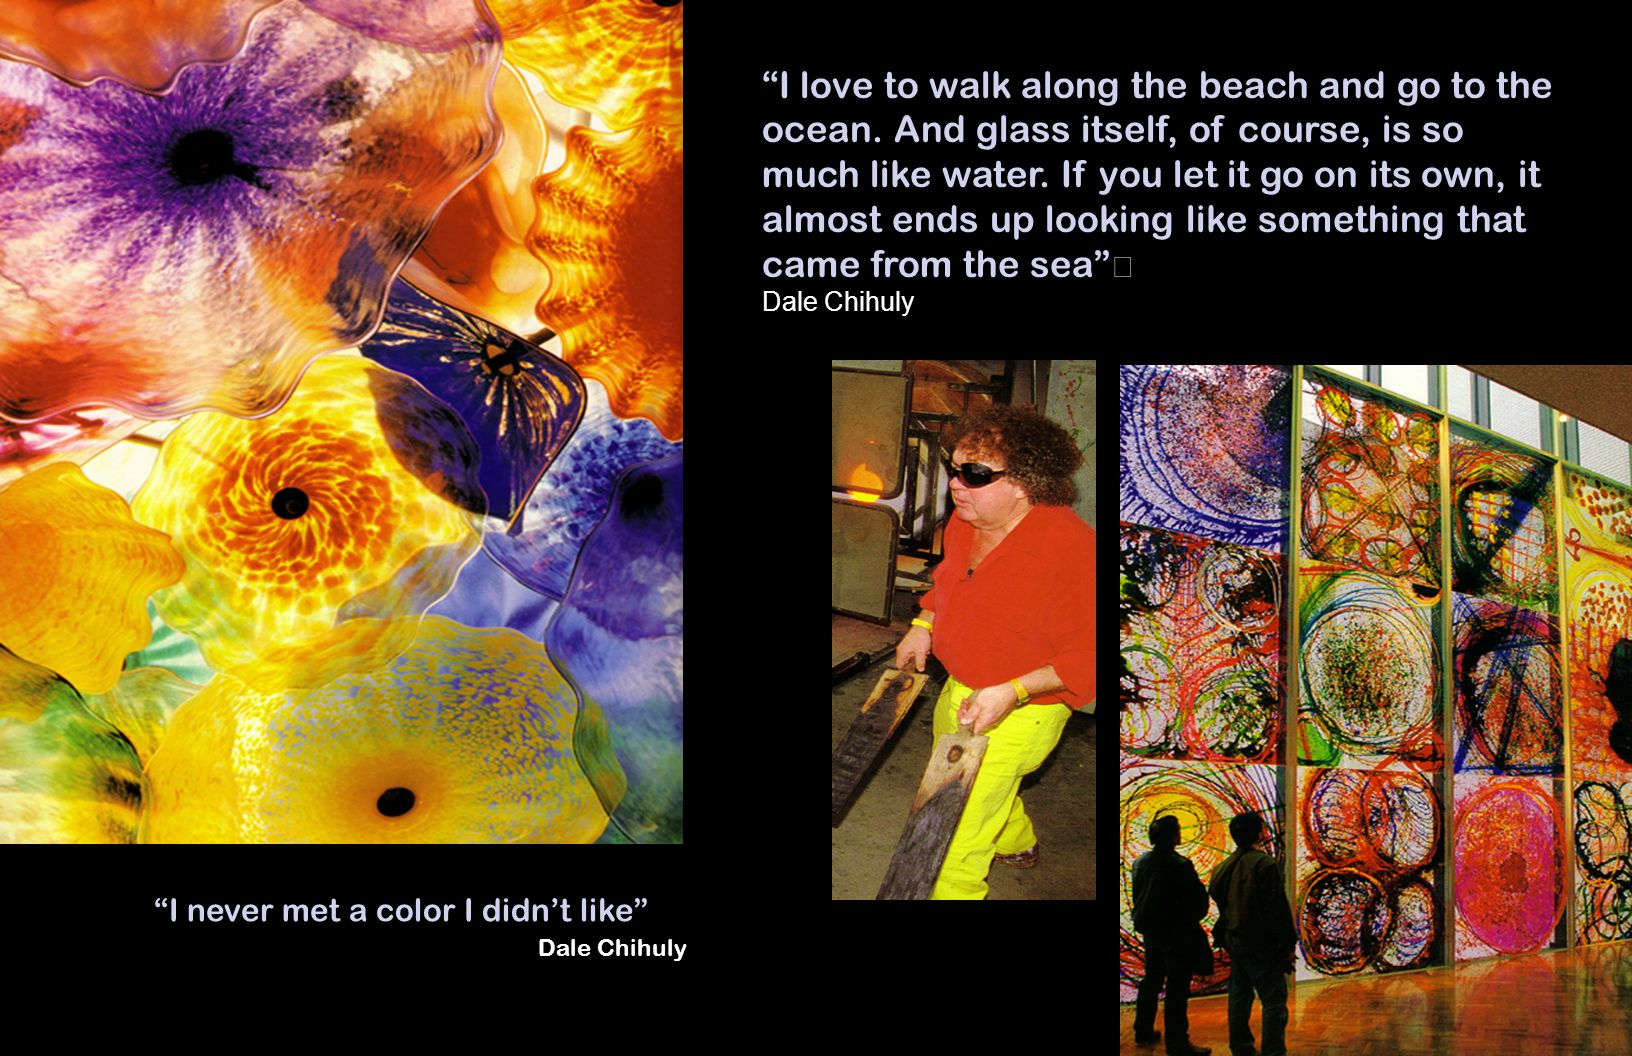 I never met a color I didnt like Dale Chihuly I love to walk along the beach and go to the ocean.